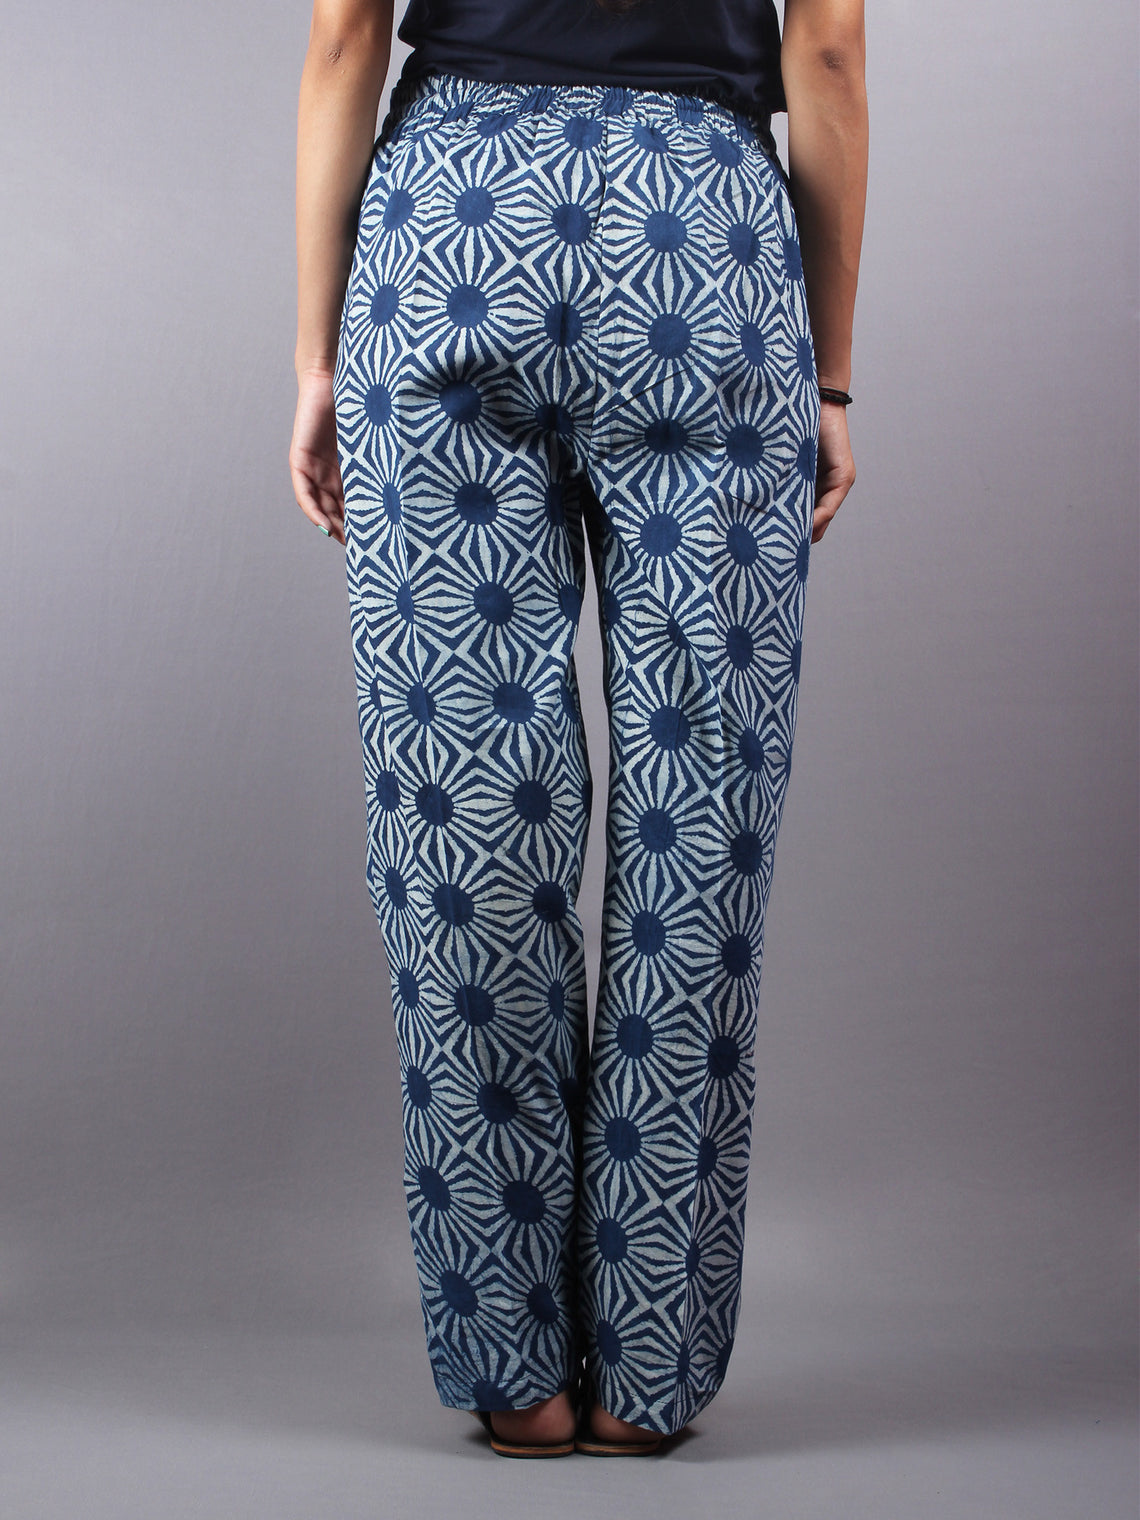 Indigo Hand Block Printed Elasticated Waist Trousers- T0317004